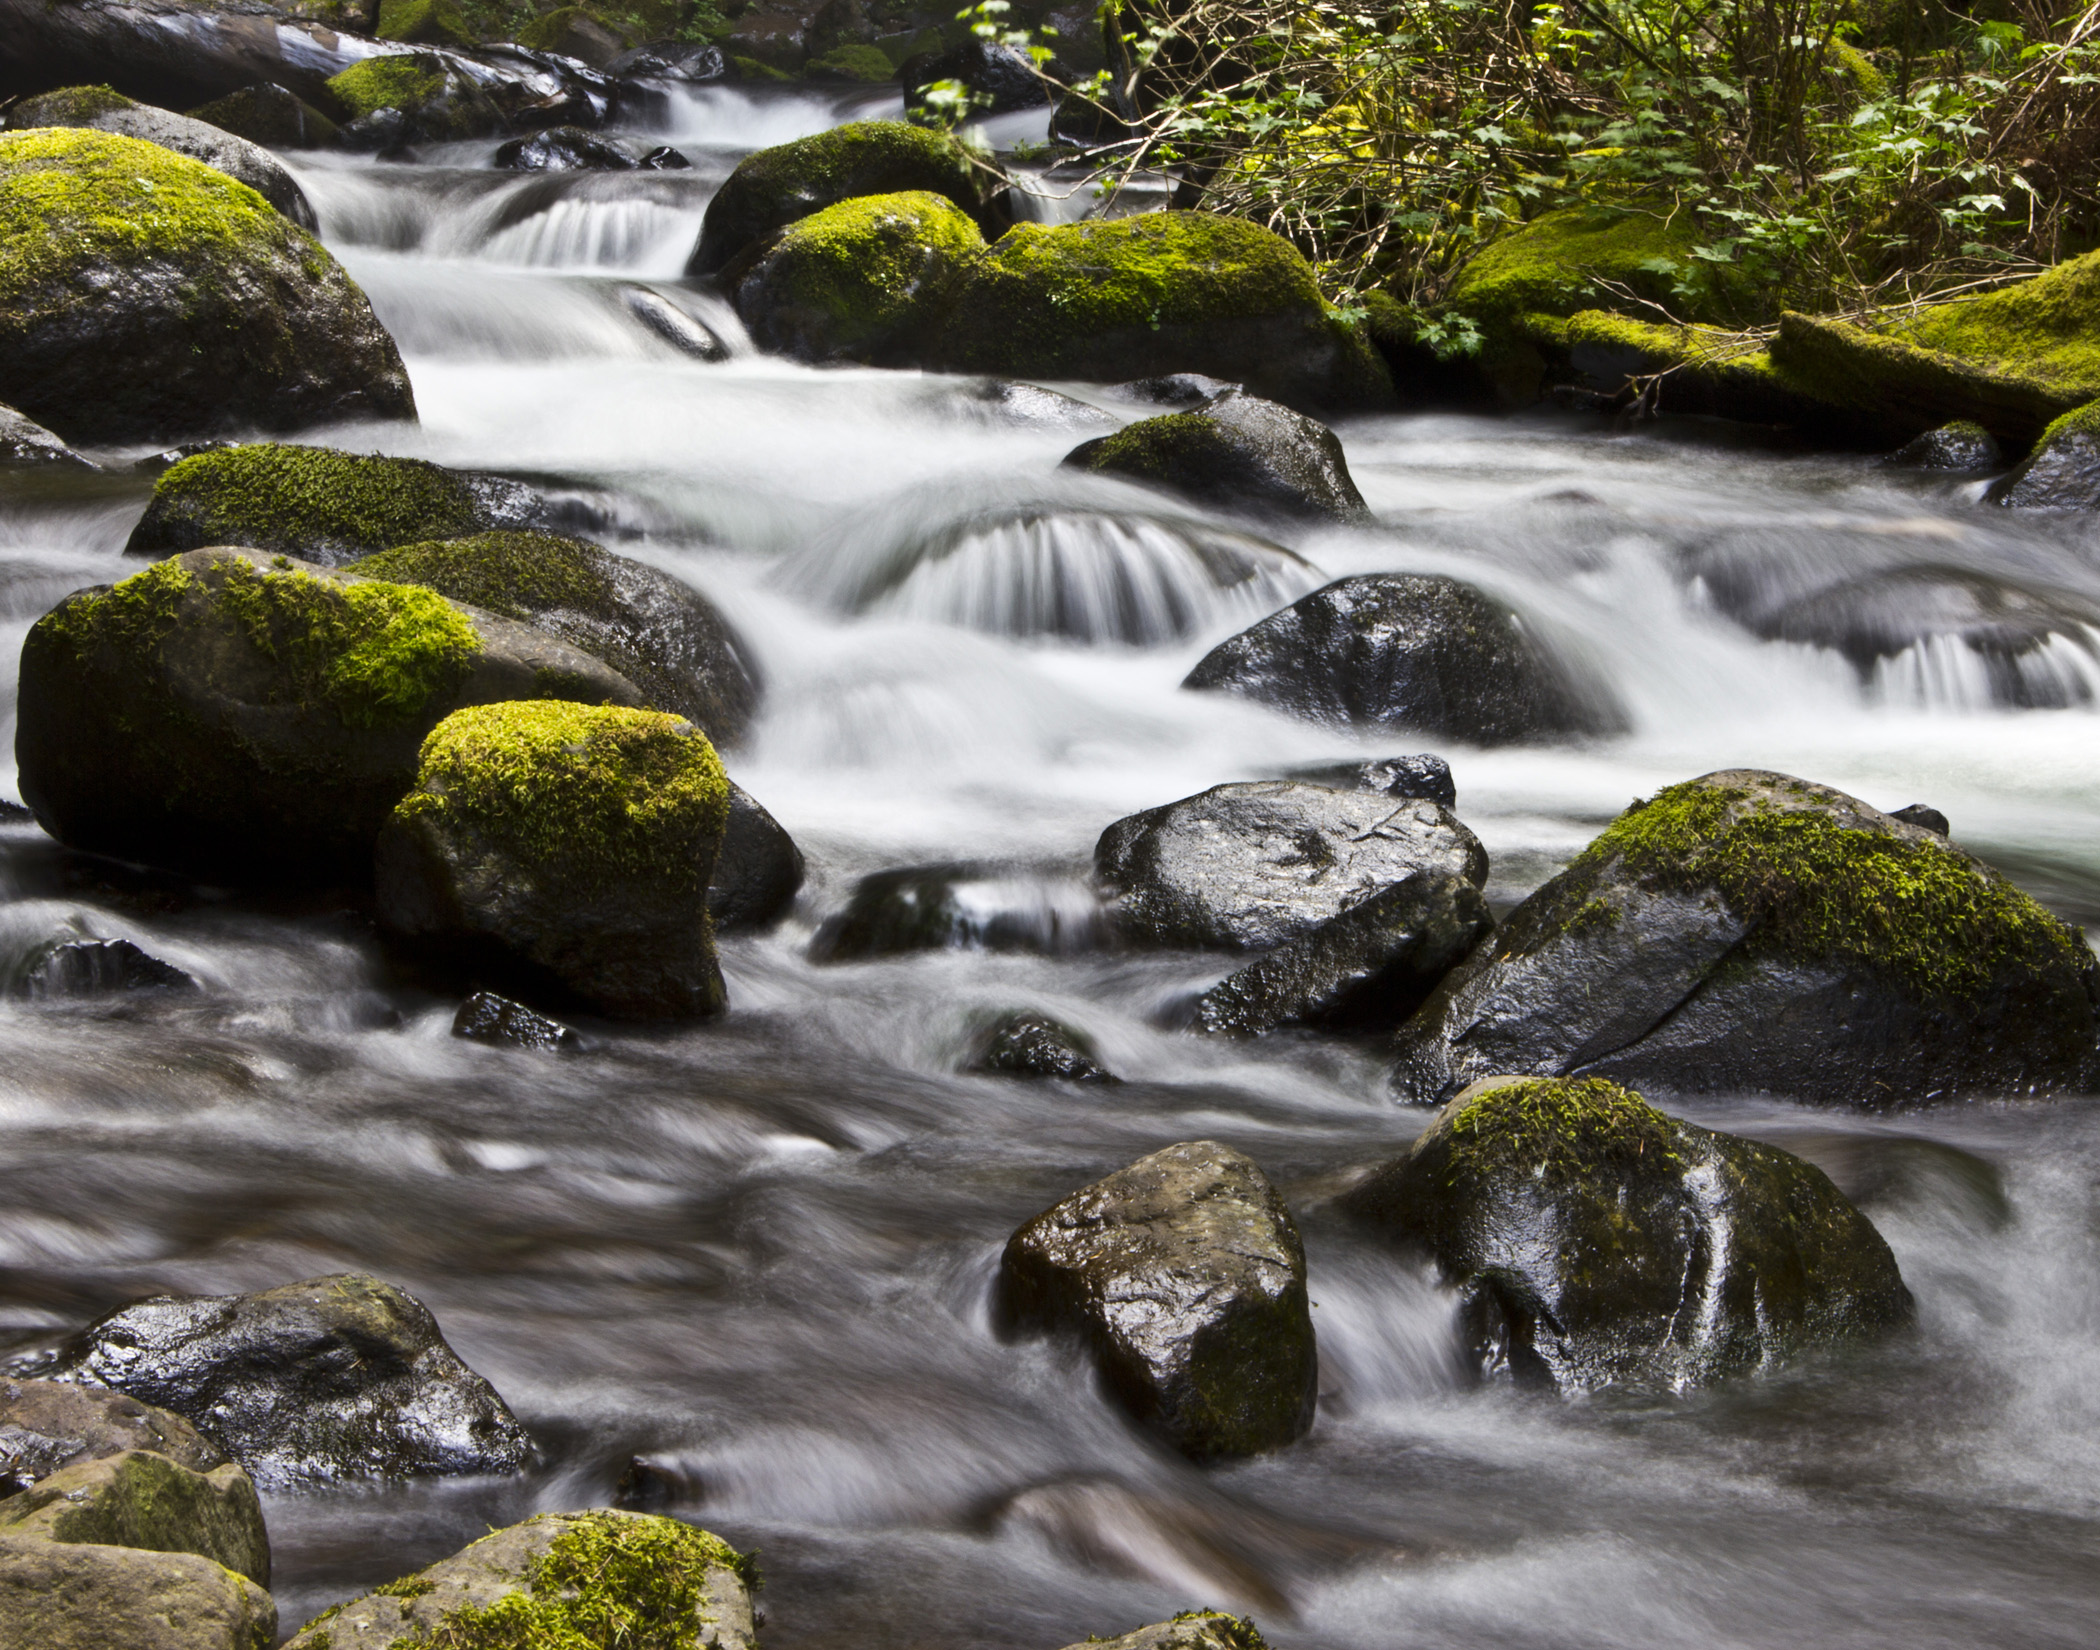 Water from waterfall flowing over mossy rocks at Horsetail Falls on Columbia River Gorge Oregon